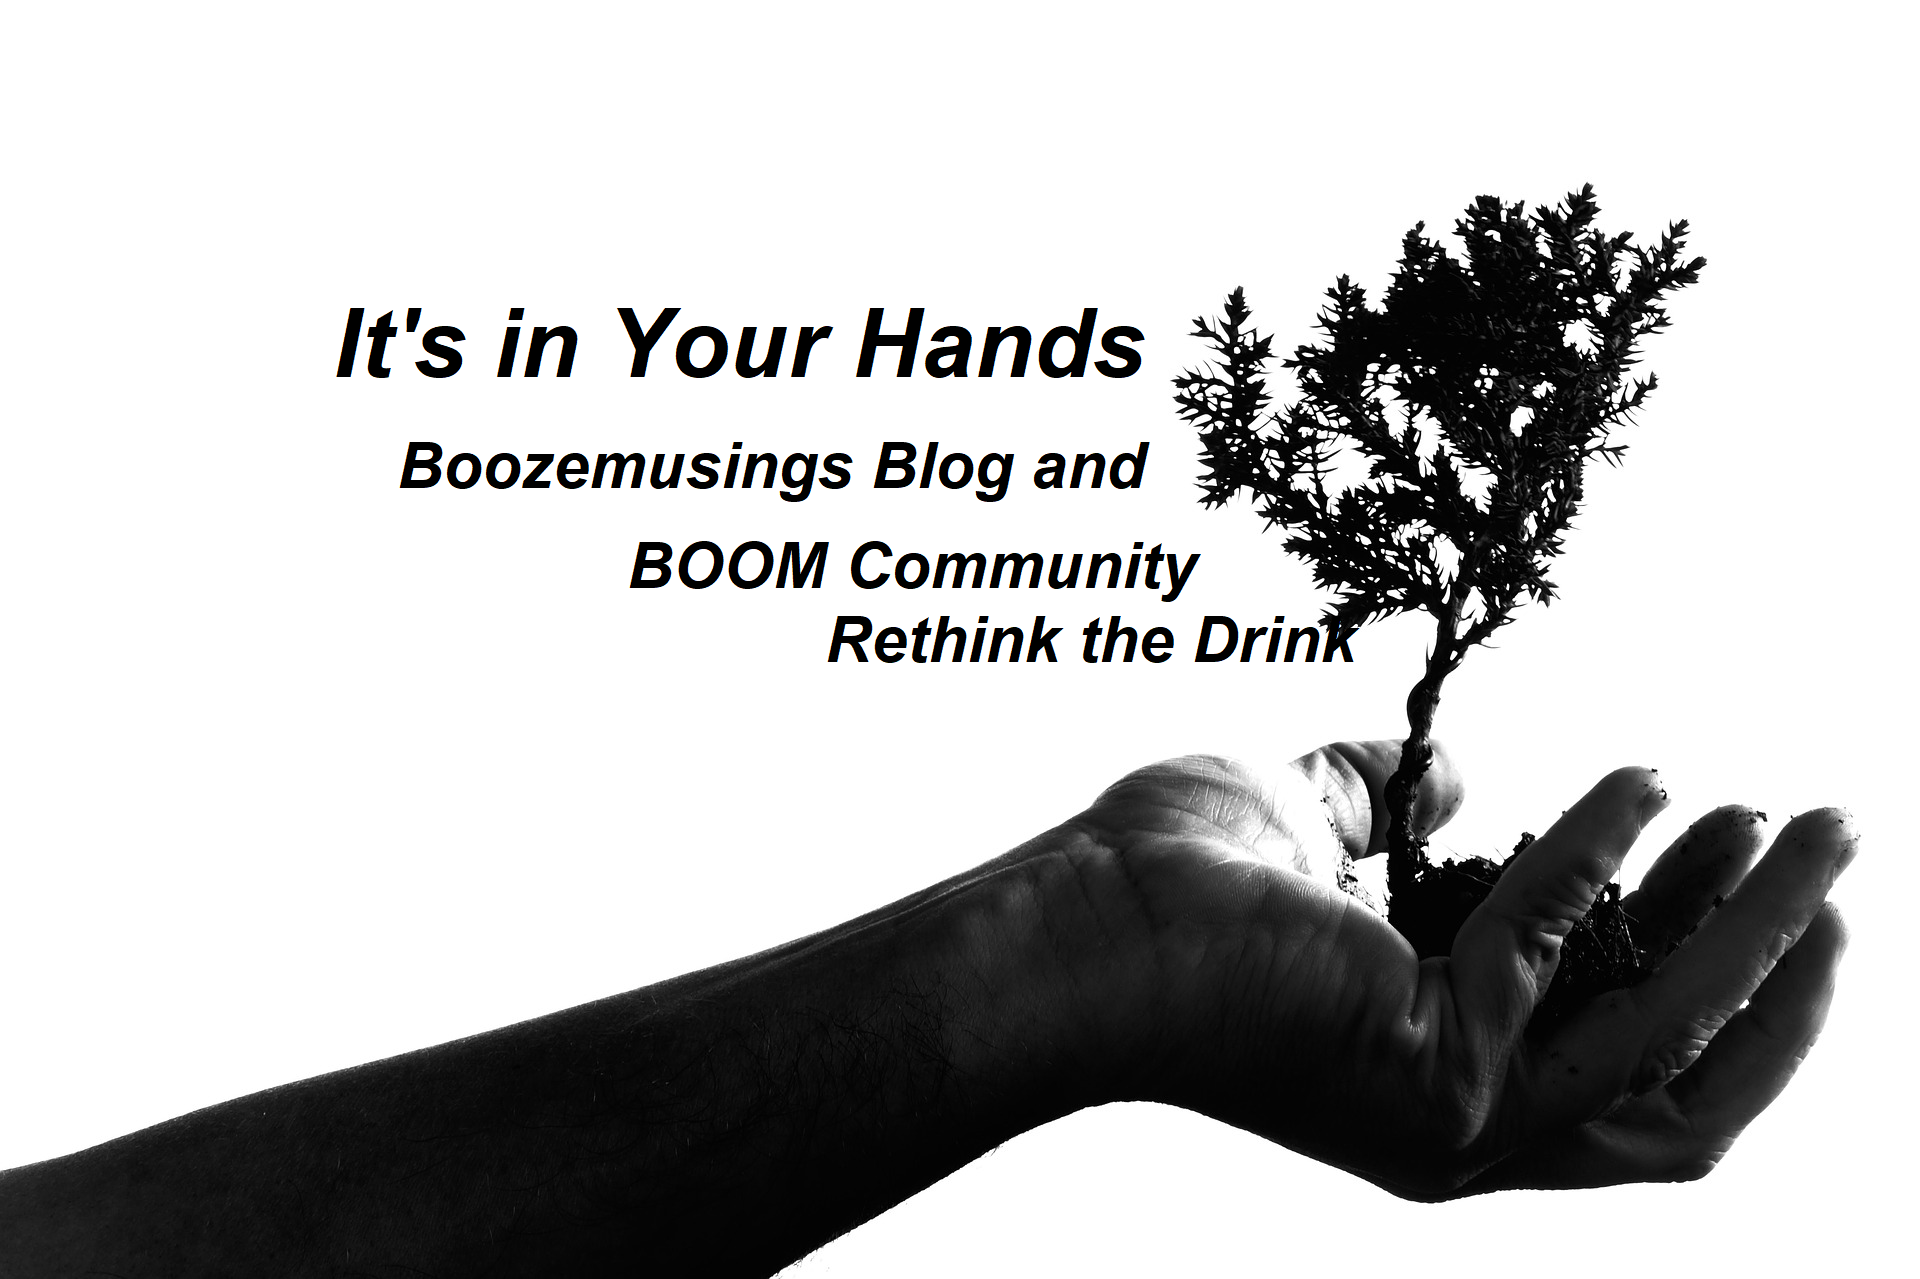 Tree growing of a hand - BOOm Community Rethink the Drink